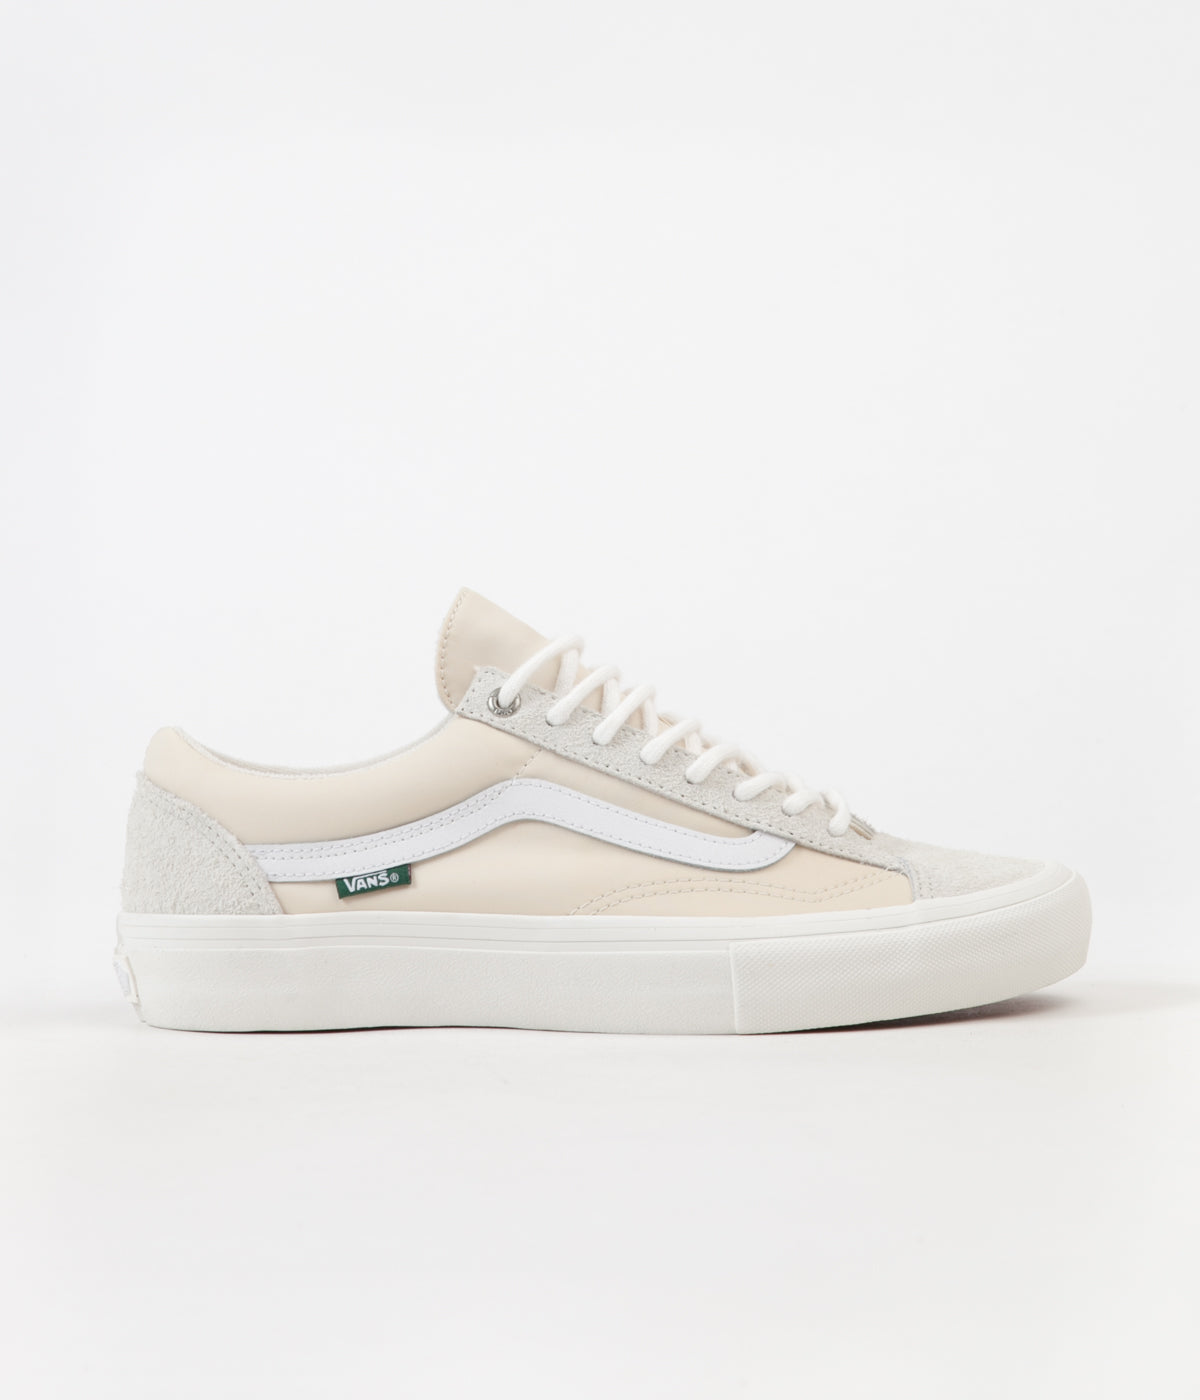 bfaf9898b95abf Vans x Pop Trading Company Style 36 Pro Shoes - Turtledove   Marshmallow